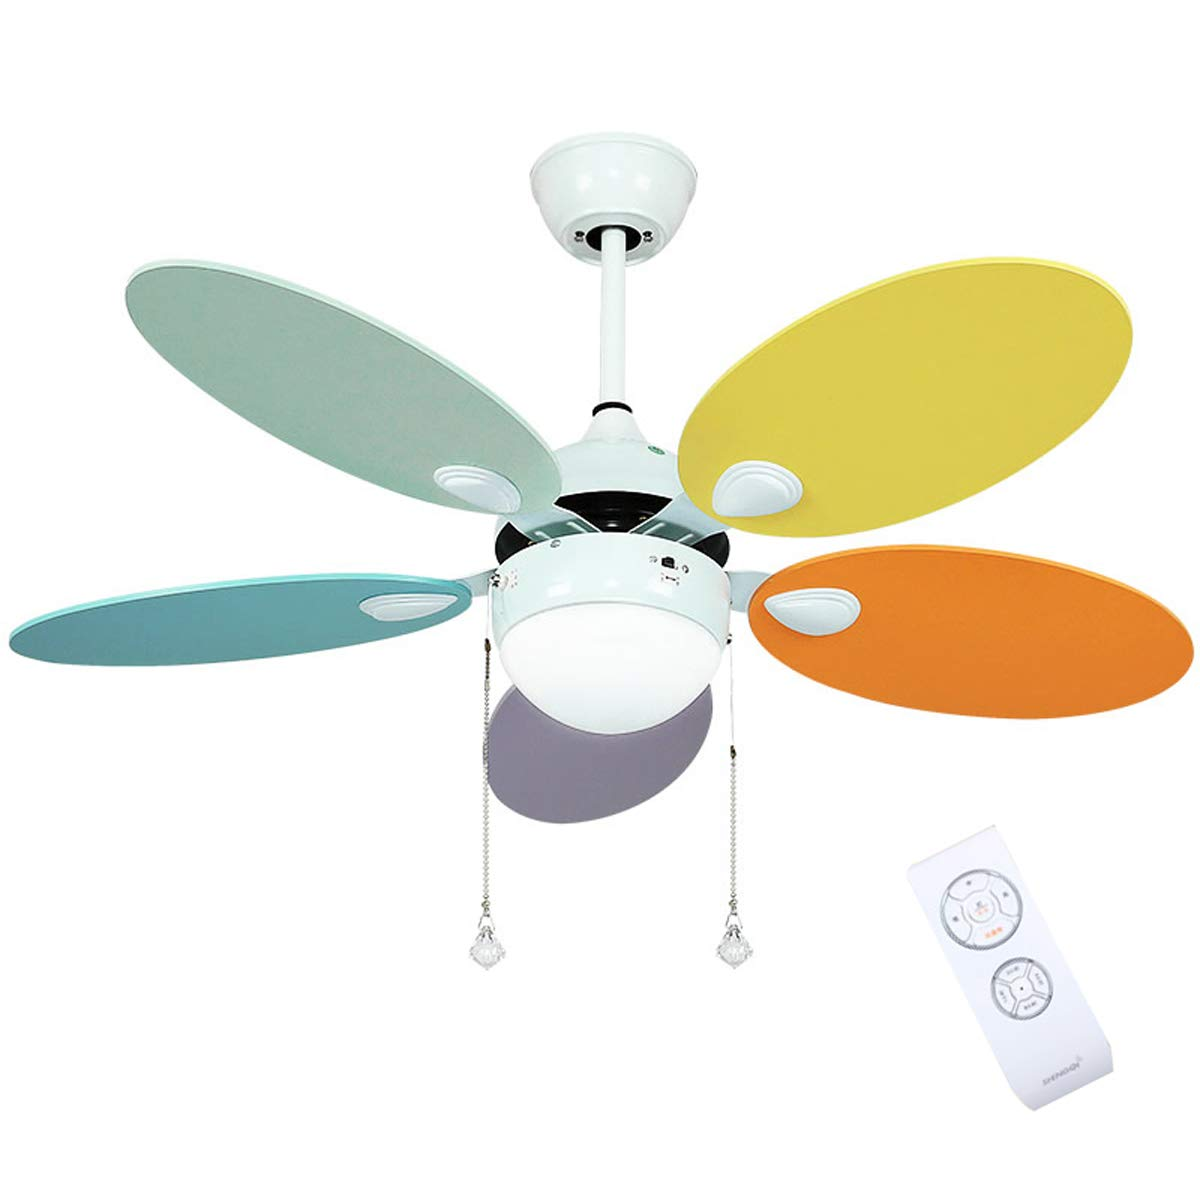 Lxn 42 107cm Modern White Metal Ceiling Fan Light For Living Room Bedroom With 5 Multi Coloured Reversible Blades And Glass Light Shade Three Speed Wind Led Light And Remote Control Buy Online In